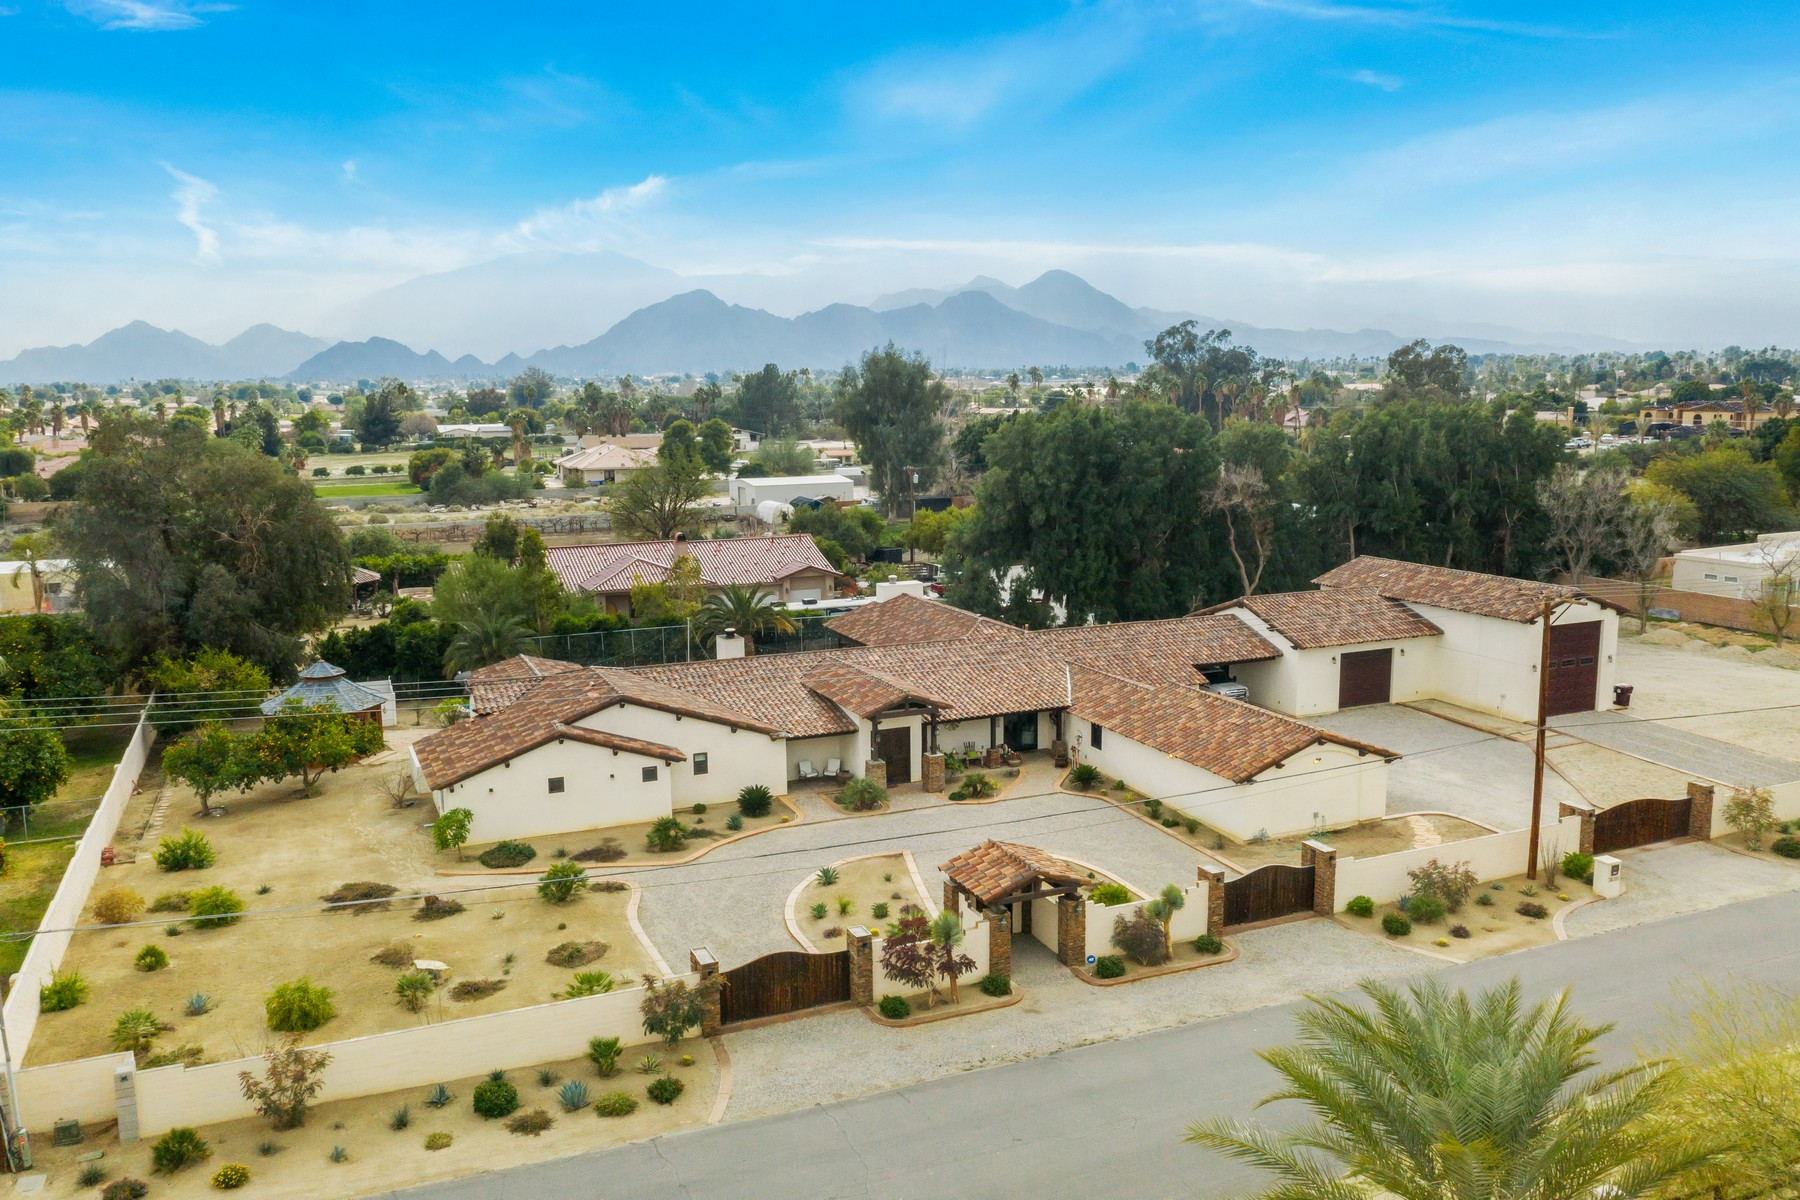 Single Family Homes for Active at 78305 Avenue 41 Bermuda Dunes, California 92203 United States